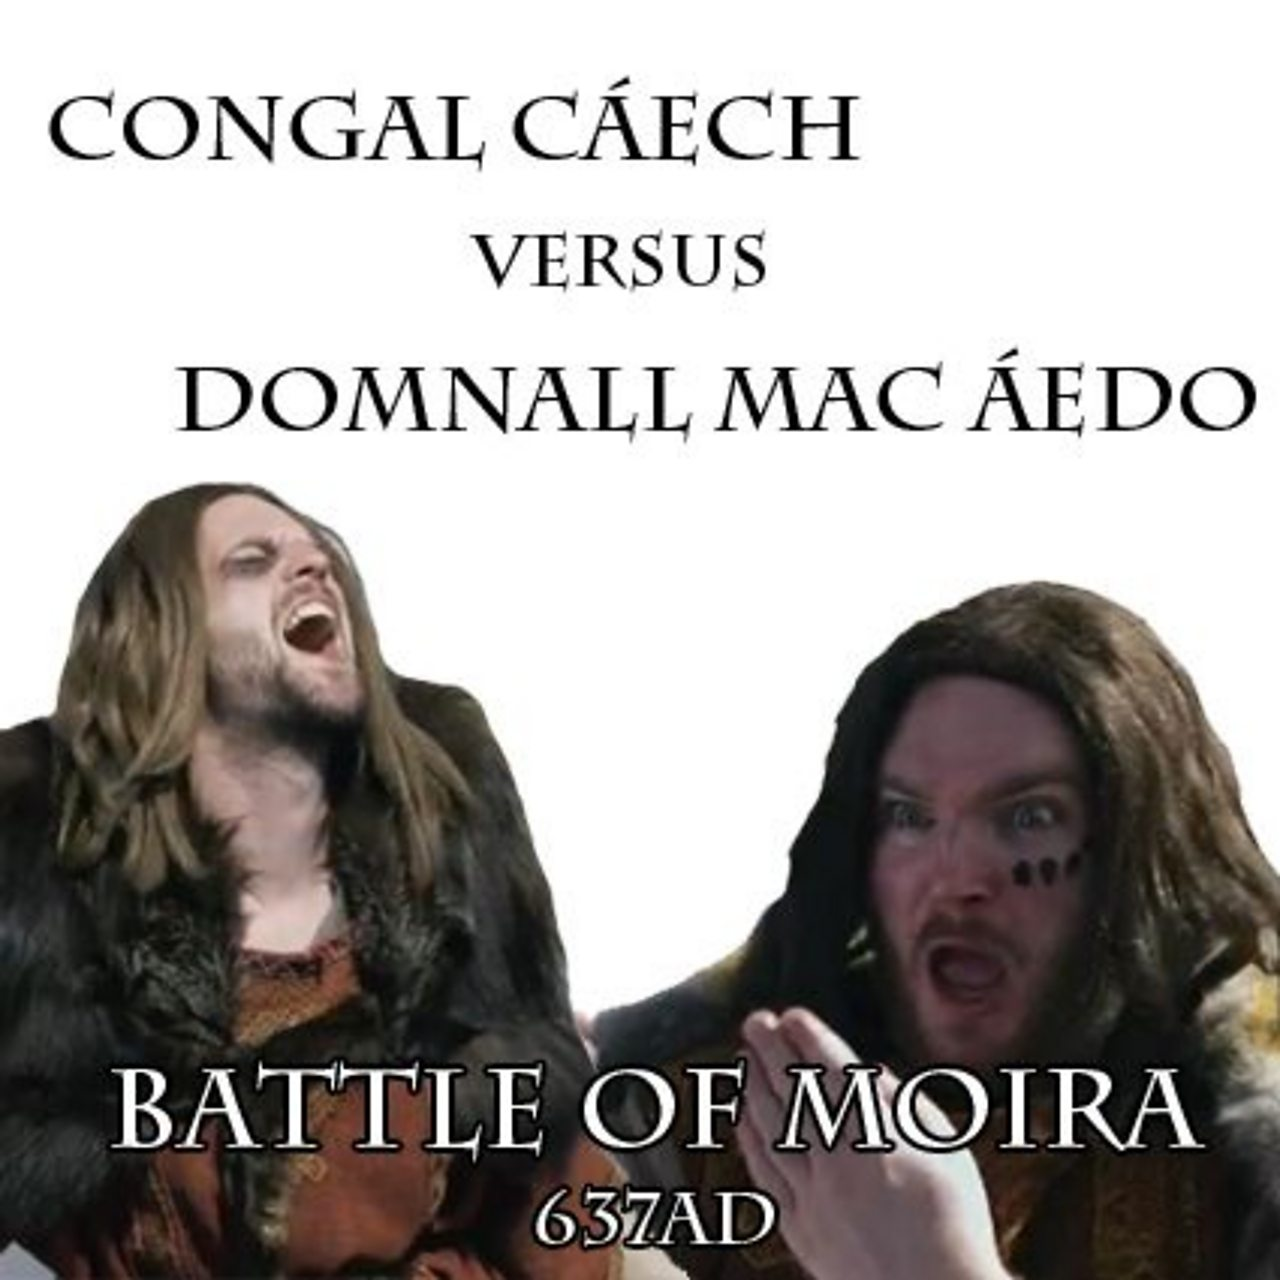 A poster for the Battle of Moira